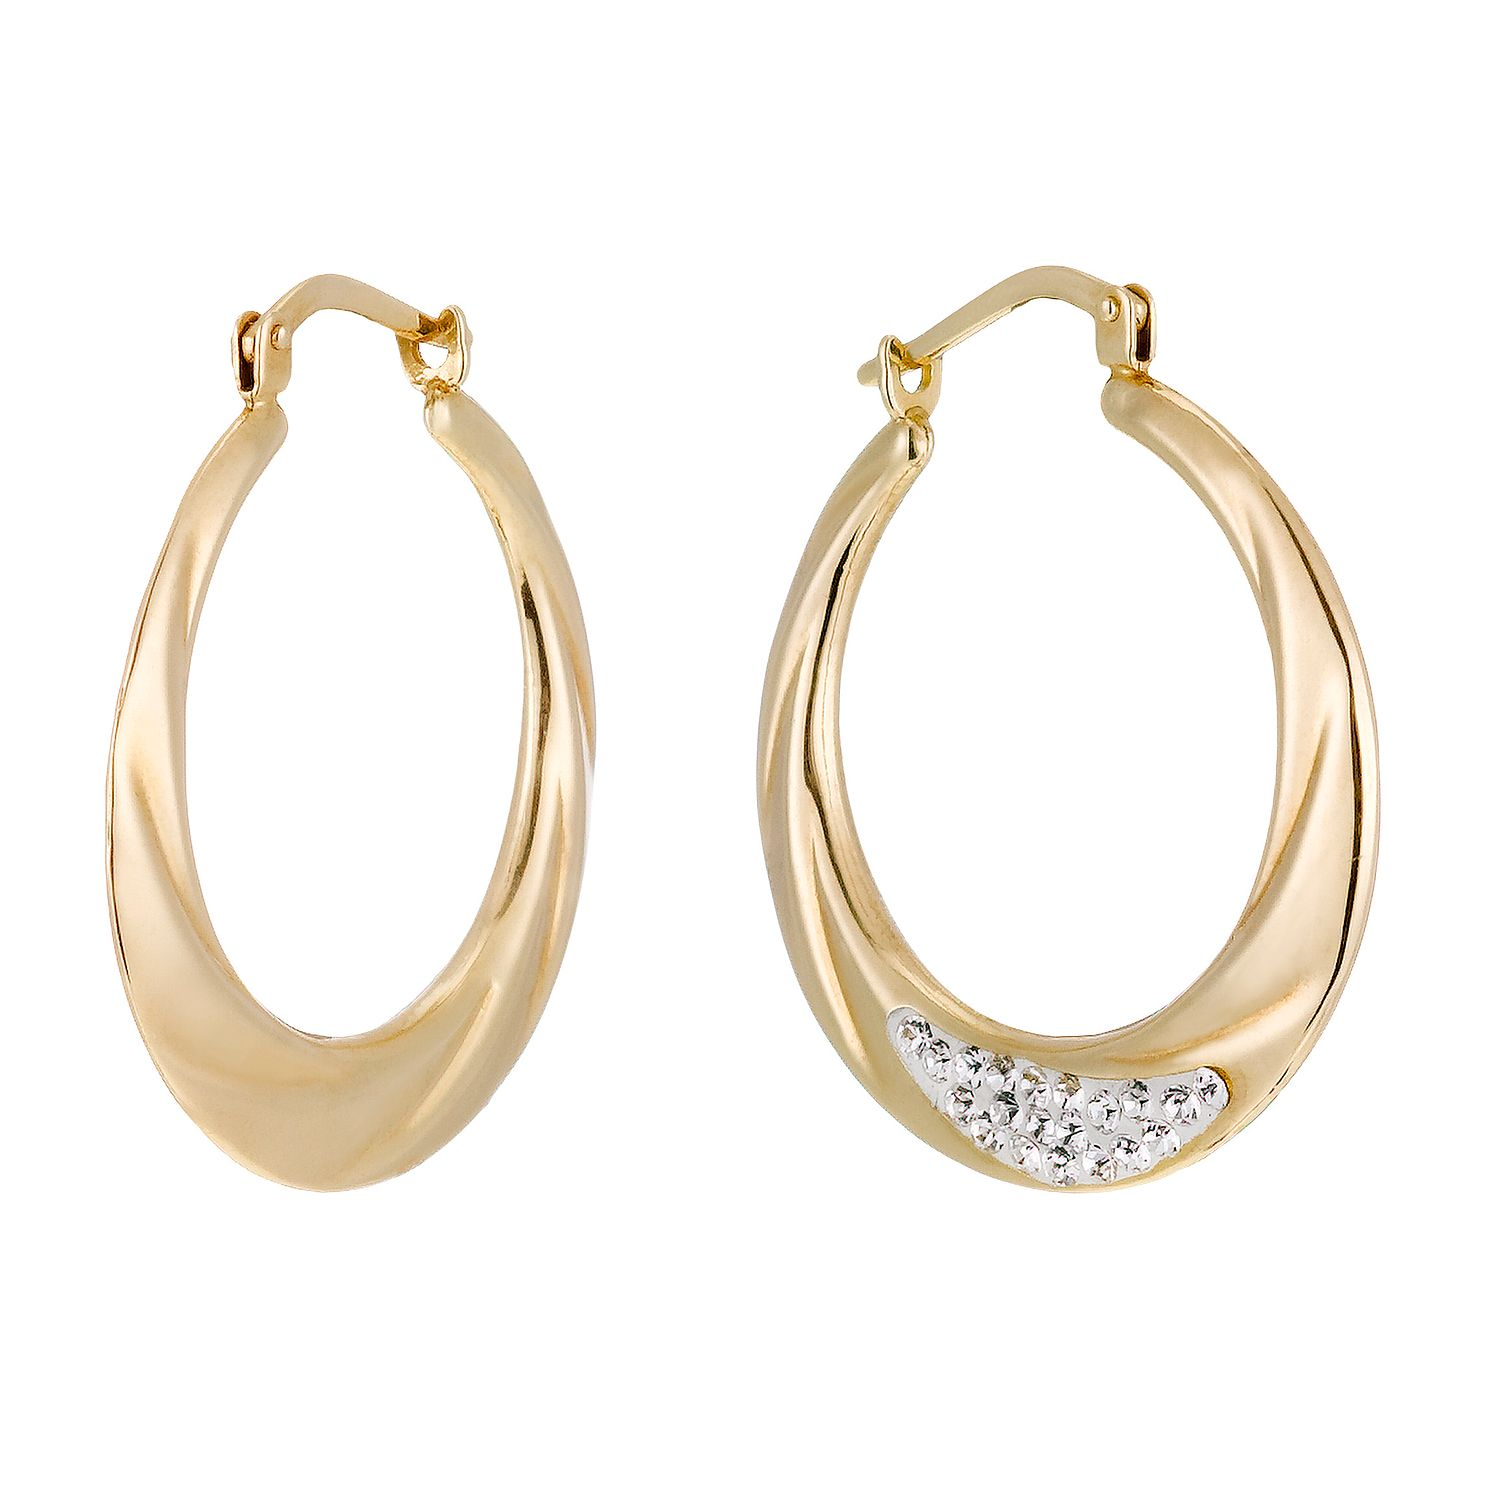 Together Silver & 9ct Bonded Gold Crystal Hoop Earrings - Product number 1357530